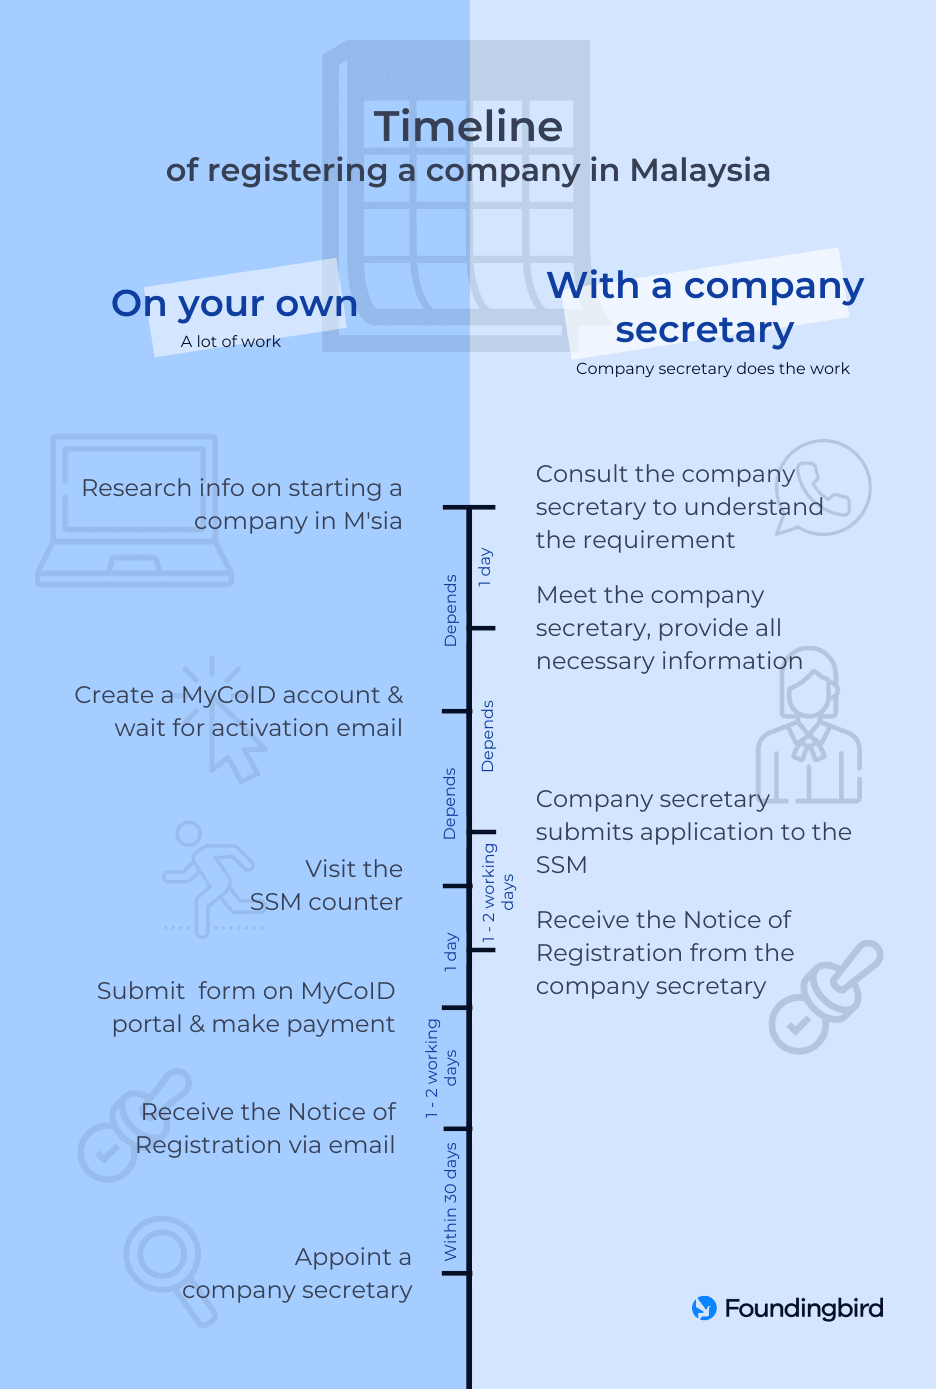 Timeline of registering a company in Malaysia - Infographic